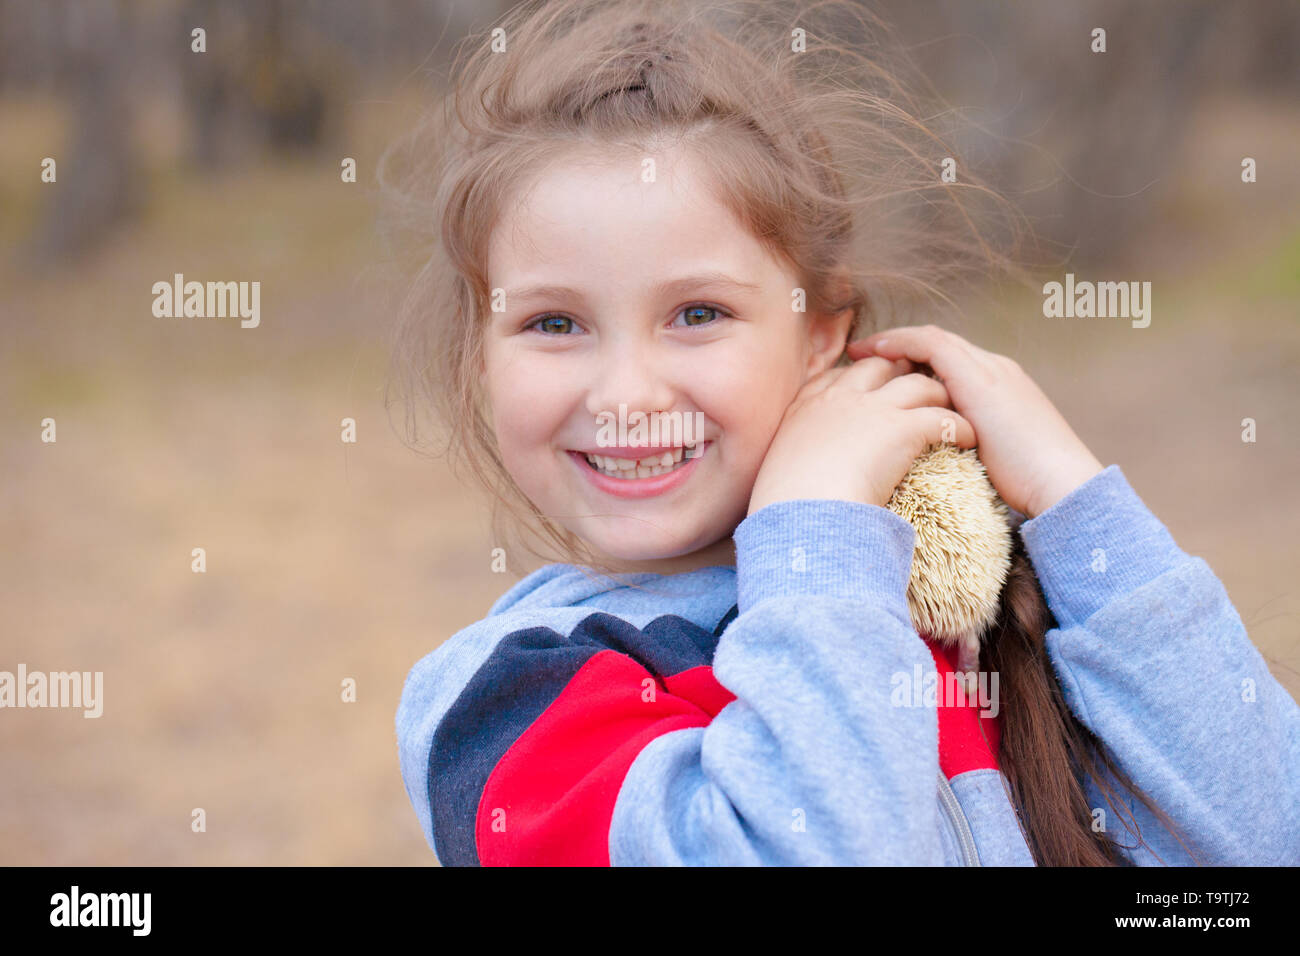 Smile concept. The girl laughs and plays with a hedgehog. The baby is holding a rodent. - Stock Image